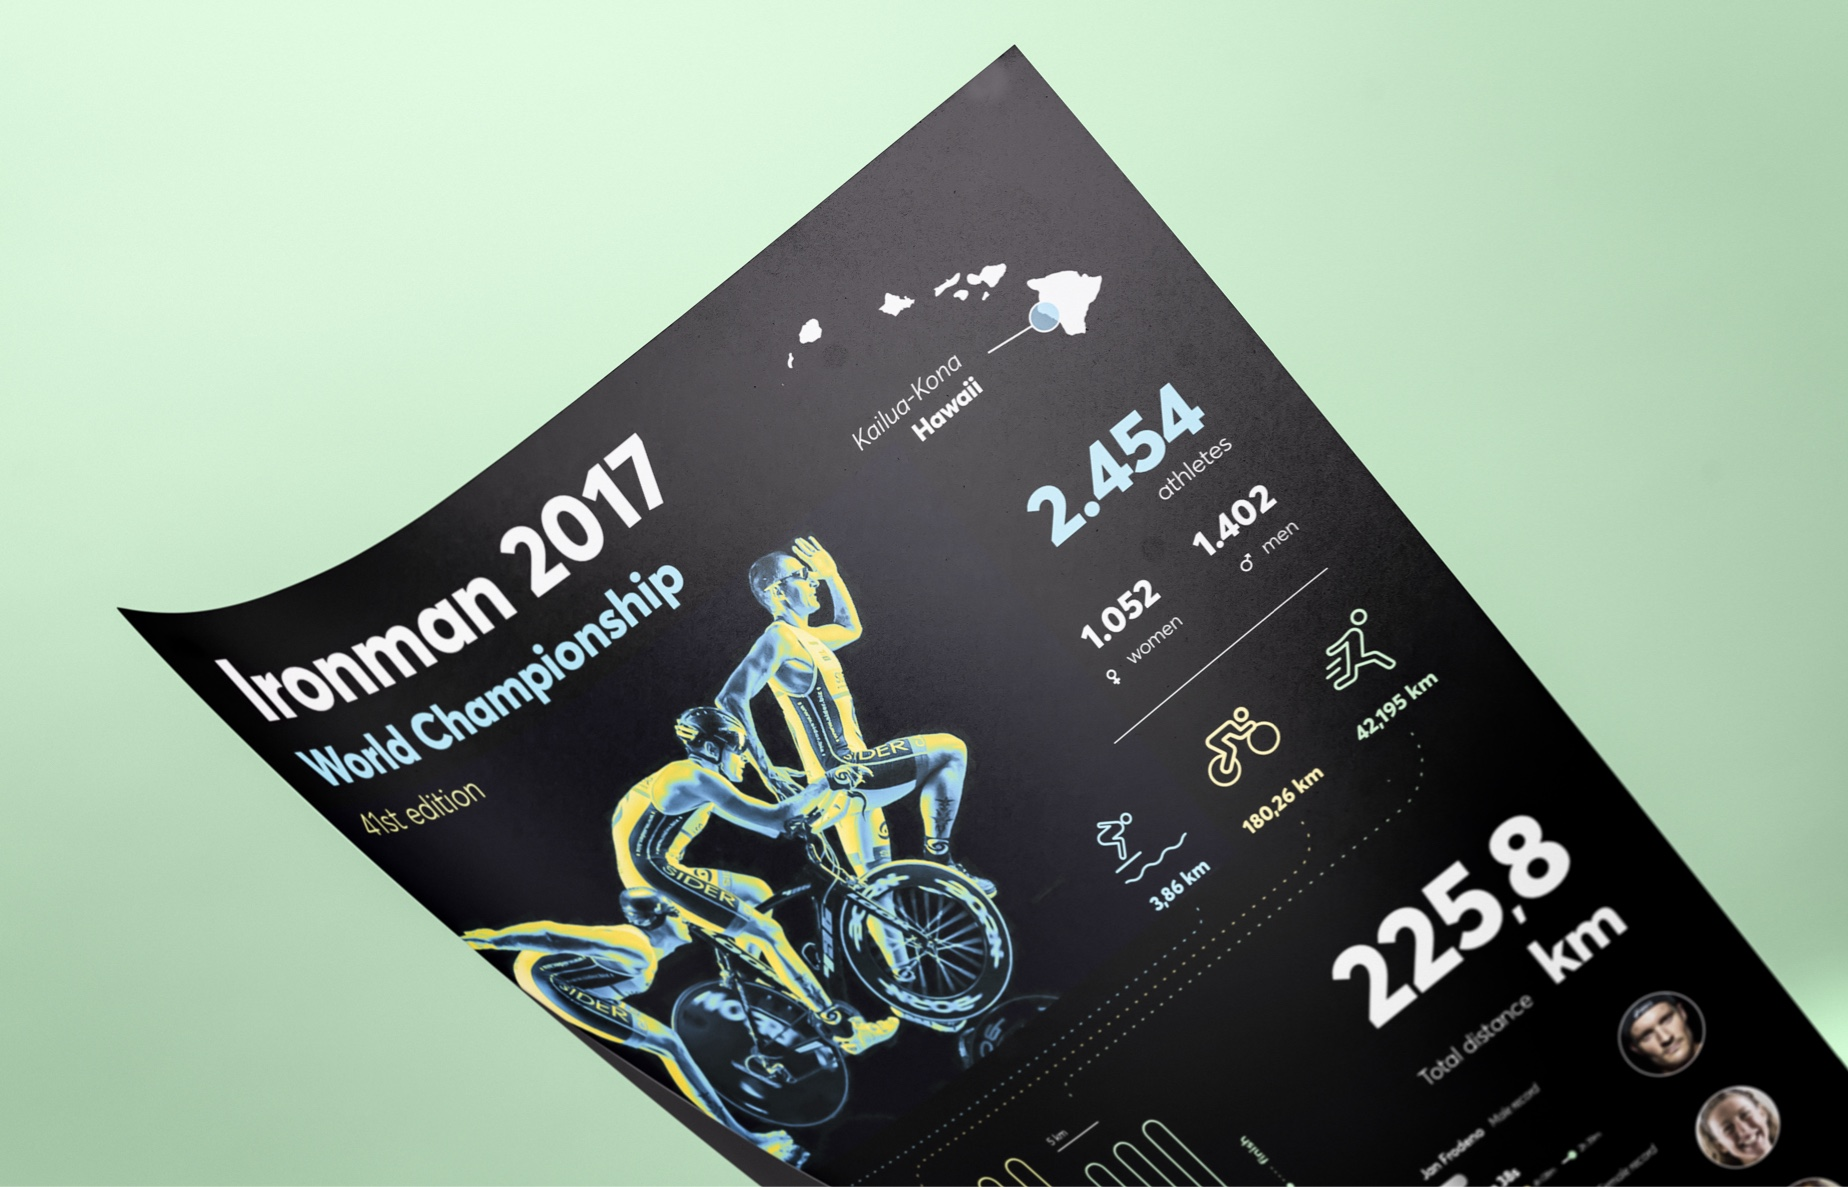 Printed Version of the Ironman World Championship 2017 Infographic by Fabio Besti